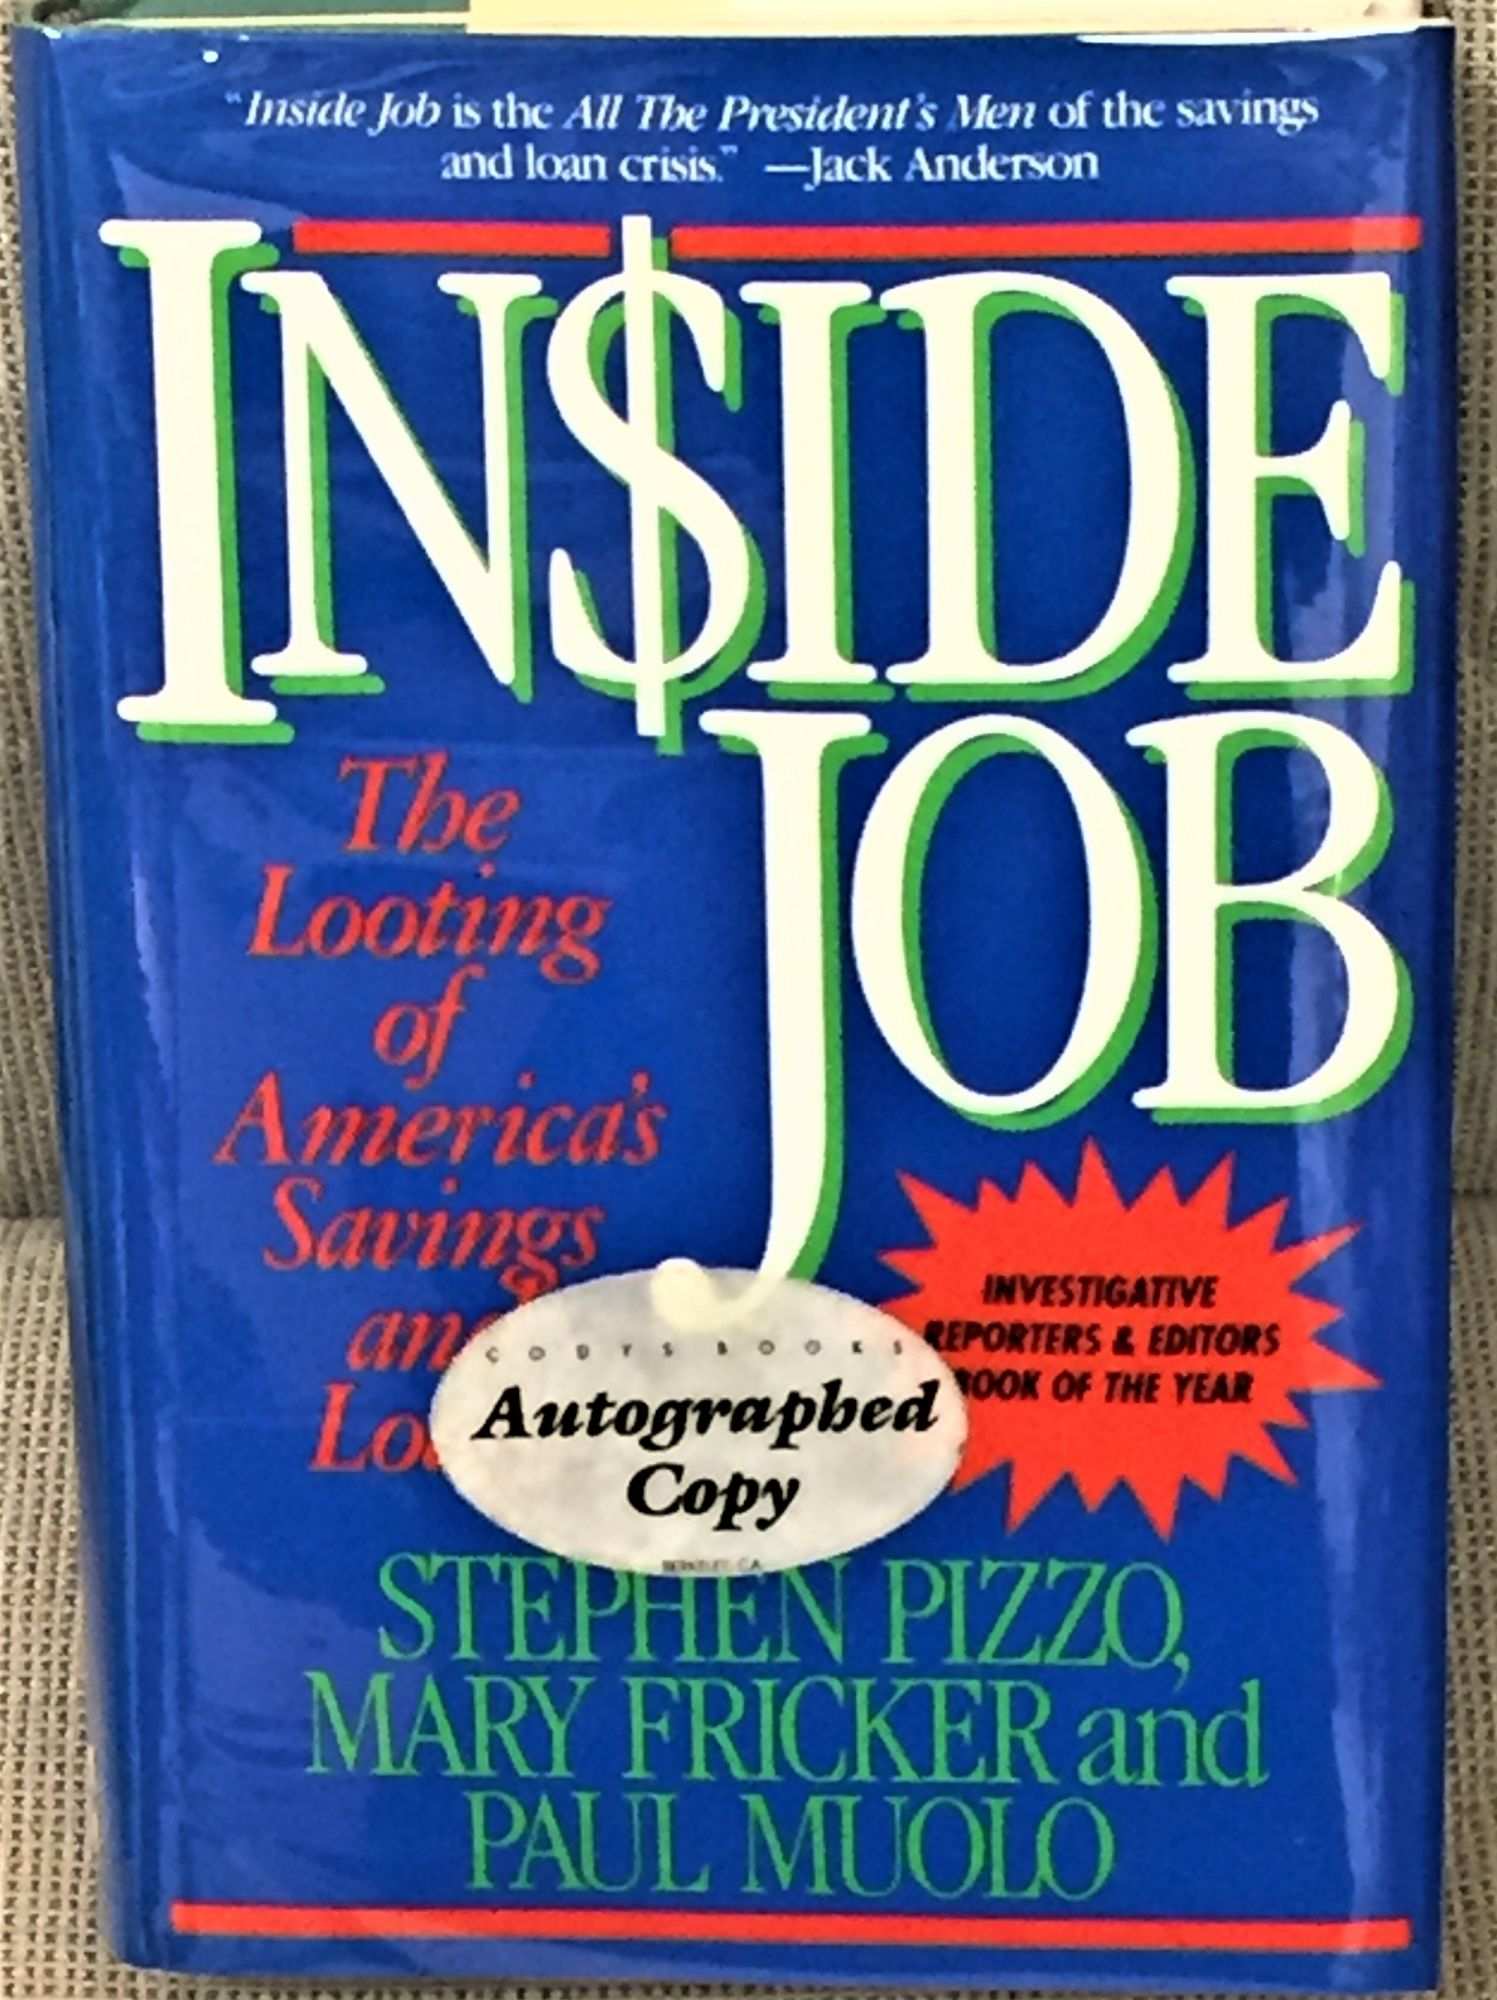 Inside Job, The Looting of America's Savings and Loans by Stephen Pizzo,  Mary Fricker and Paul Muolo: (1989) Signed by Author(s) | My Book Heaven